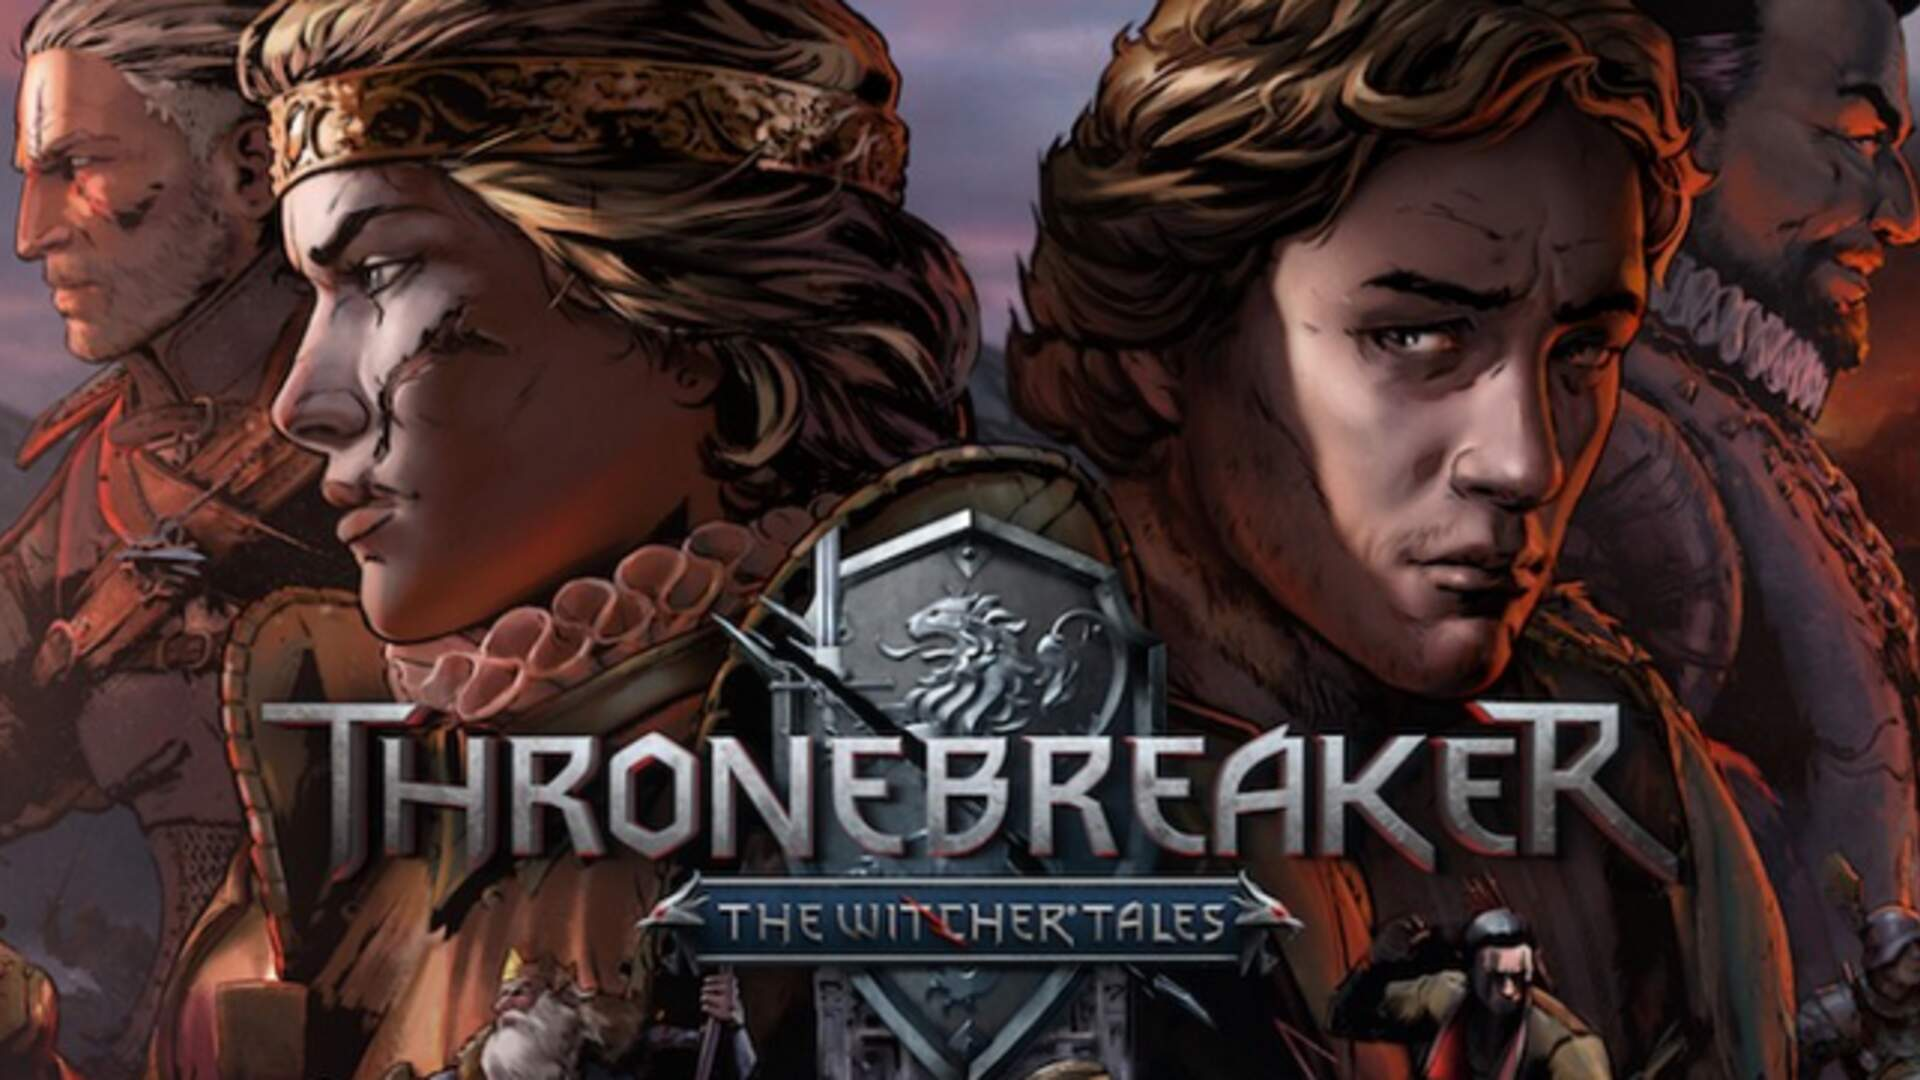 Gwent Thronebreaker Price Revealed, Available Now for Pre-order on PS4, Xbox One, and PC